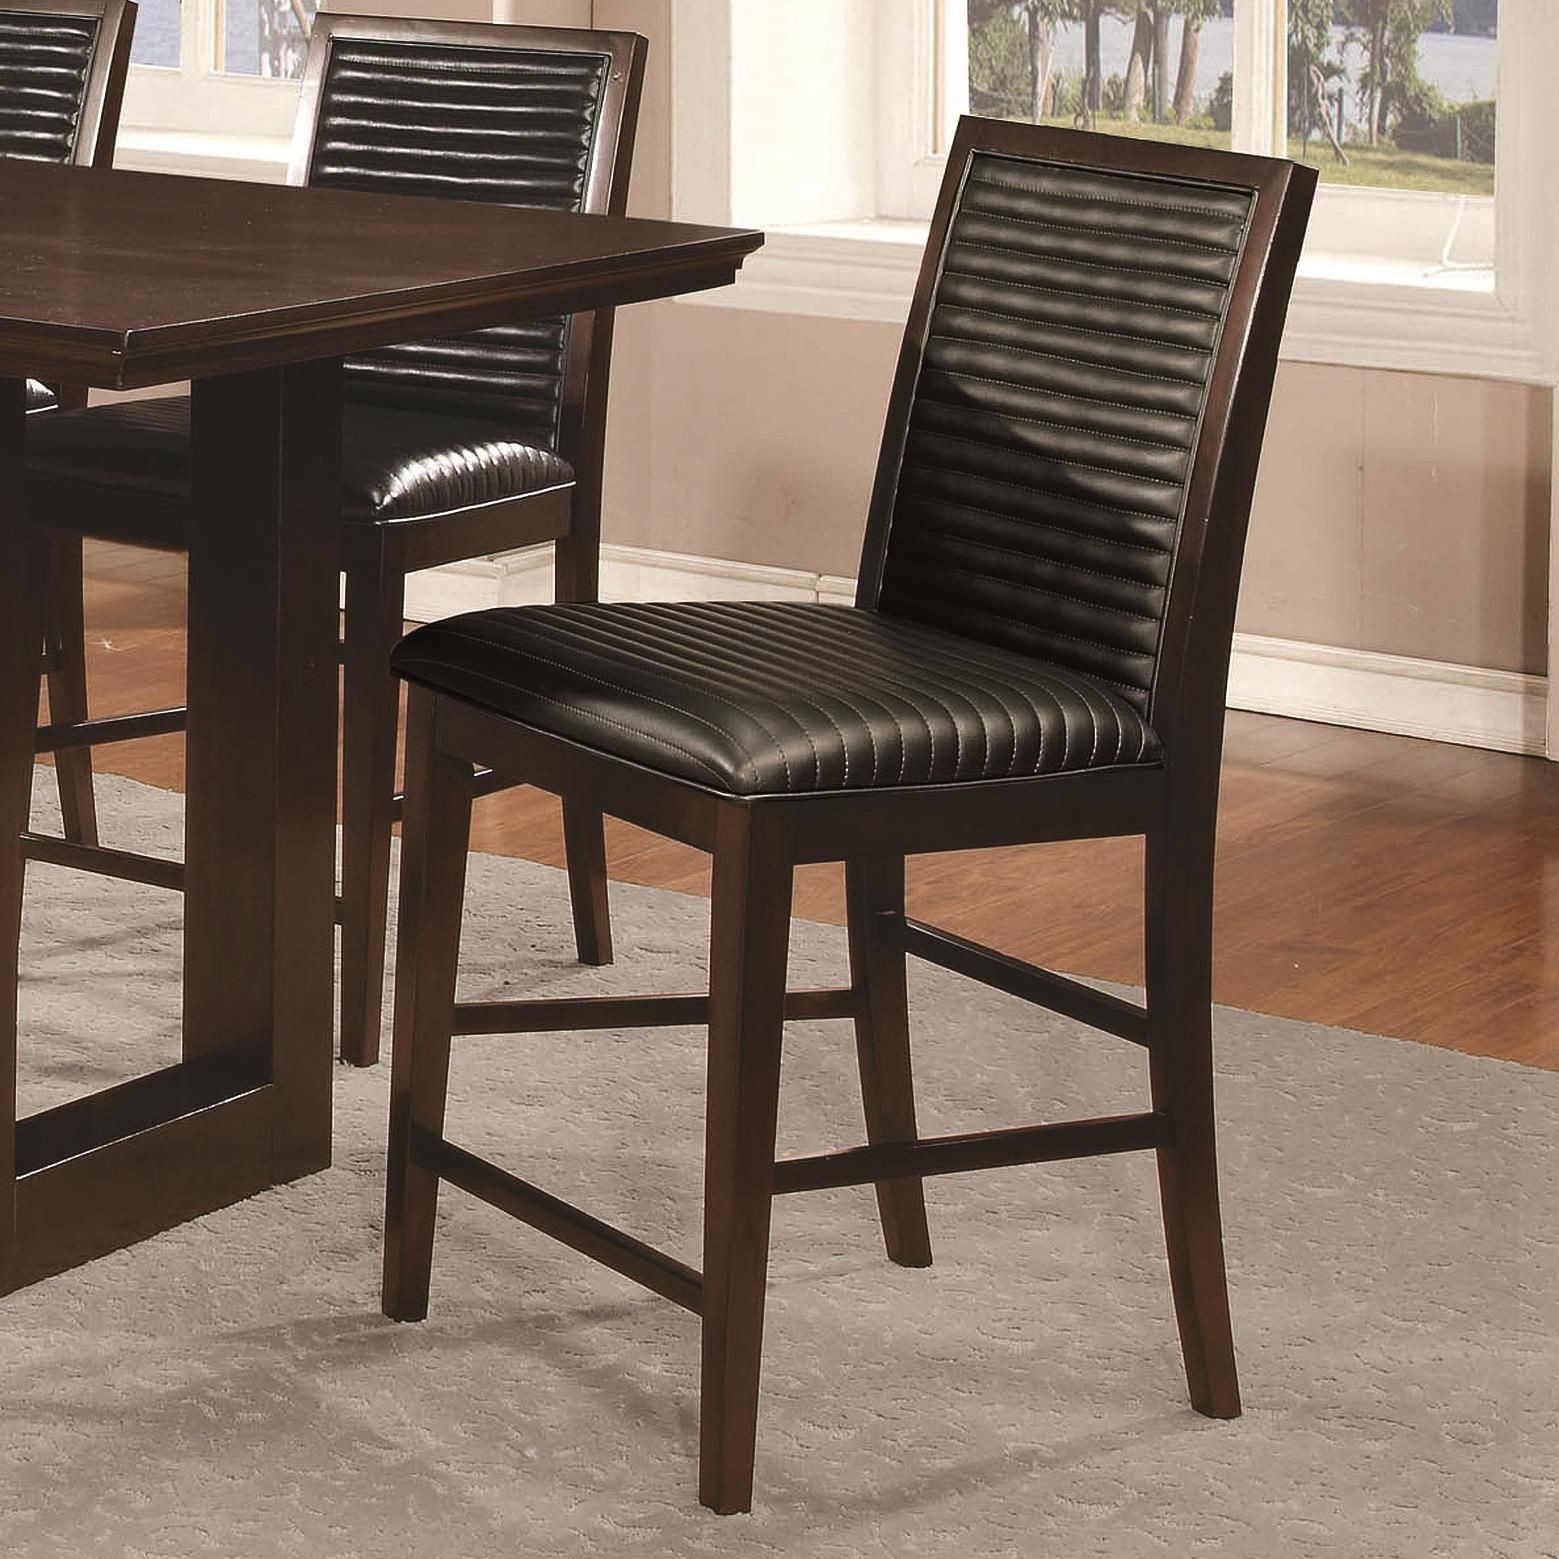 Bar Height Dining Chairs Chester Upholstered Counter Height Chair Set Of 2 From